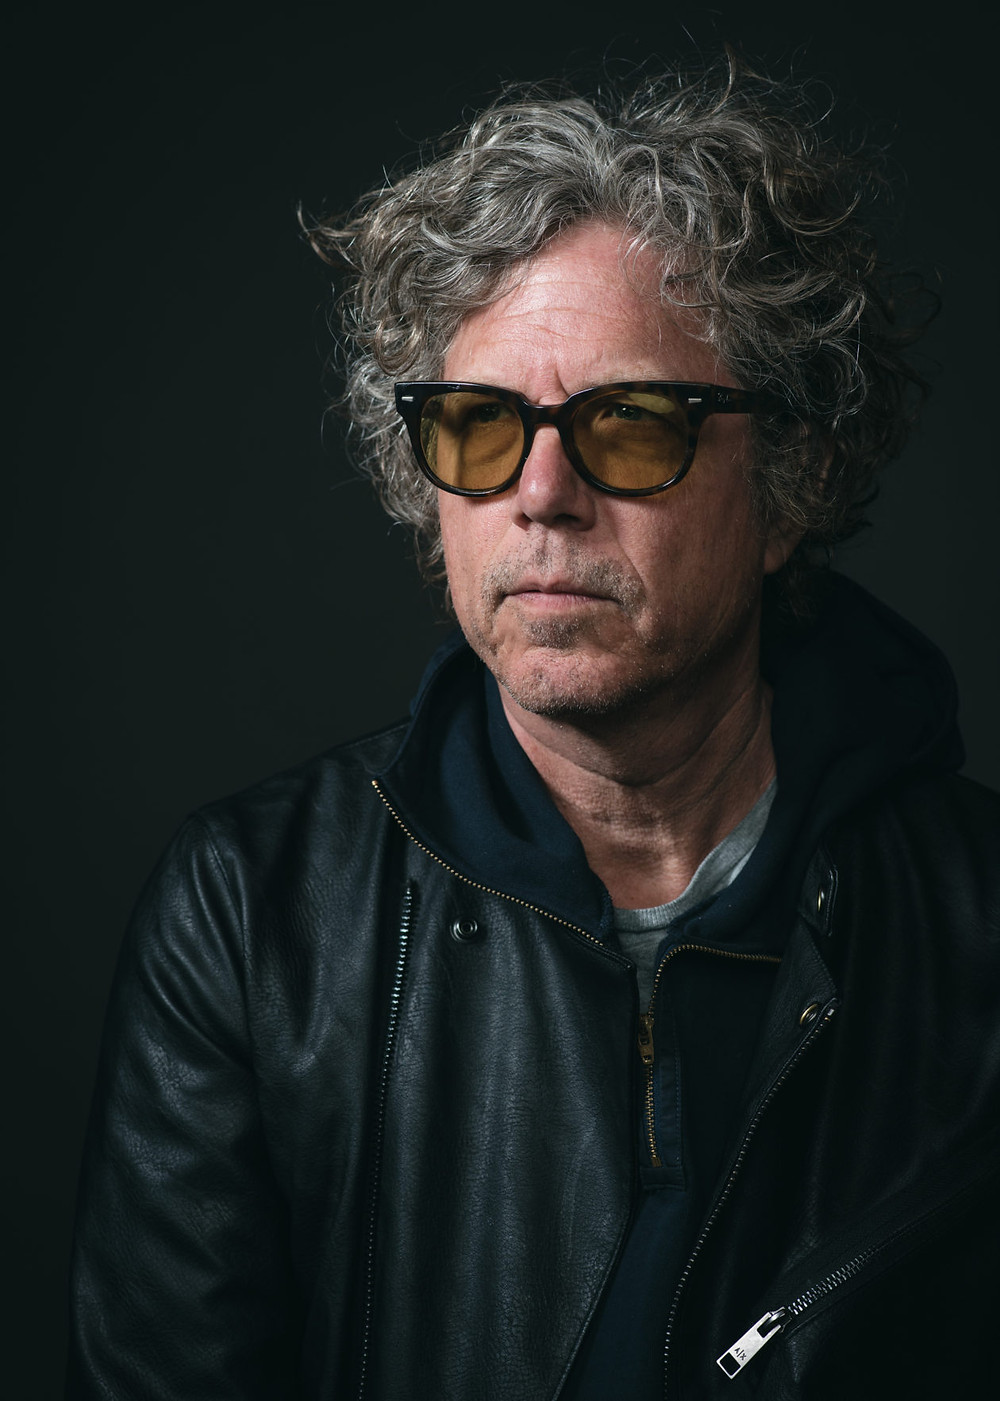 Gary Louris, photo by Nate Ryan